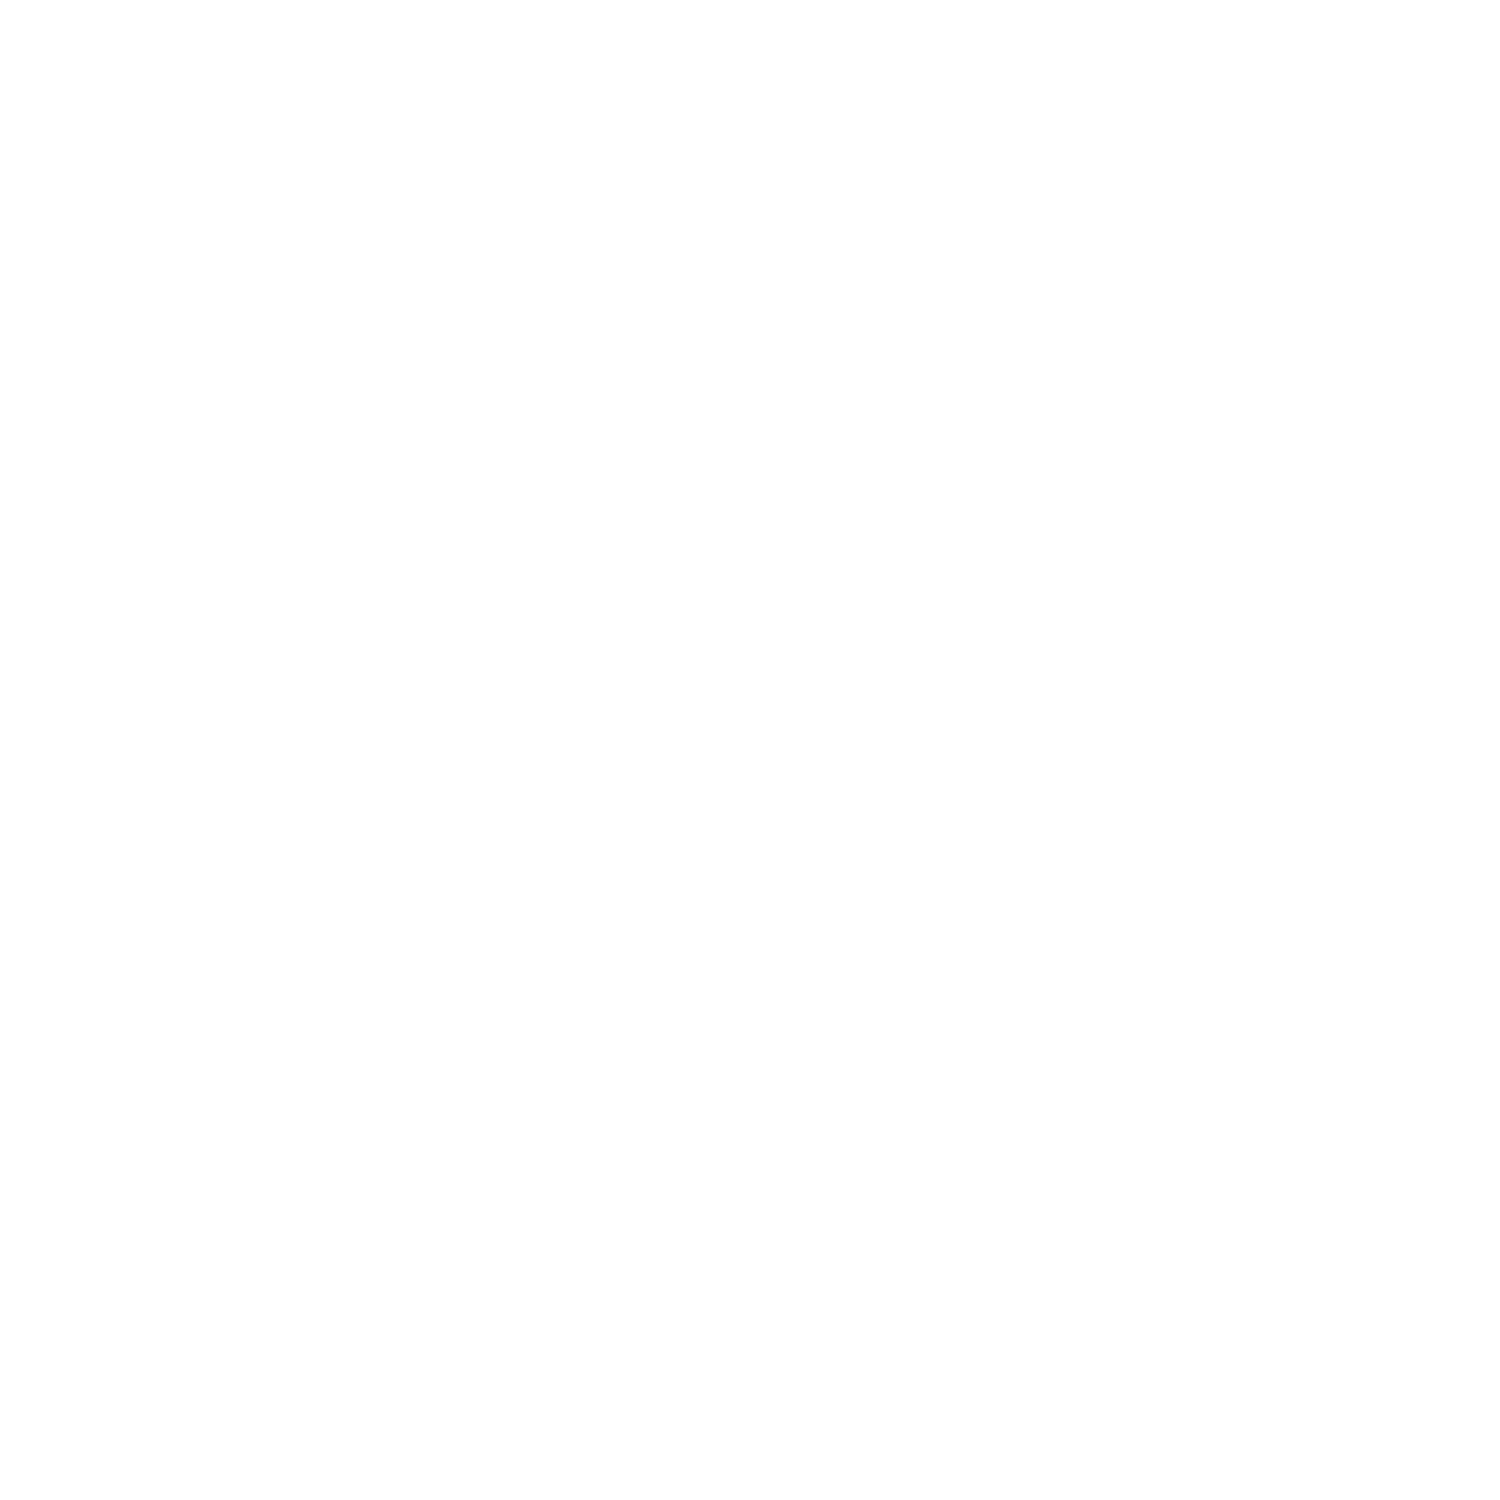 The Headwall Group